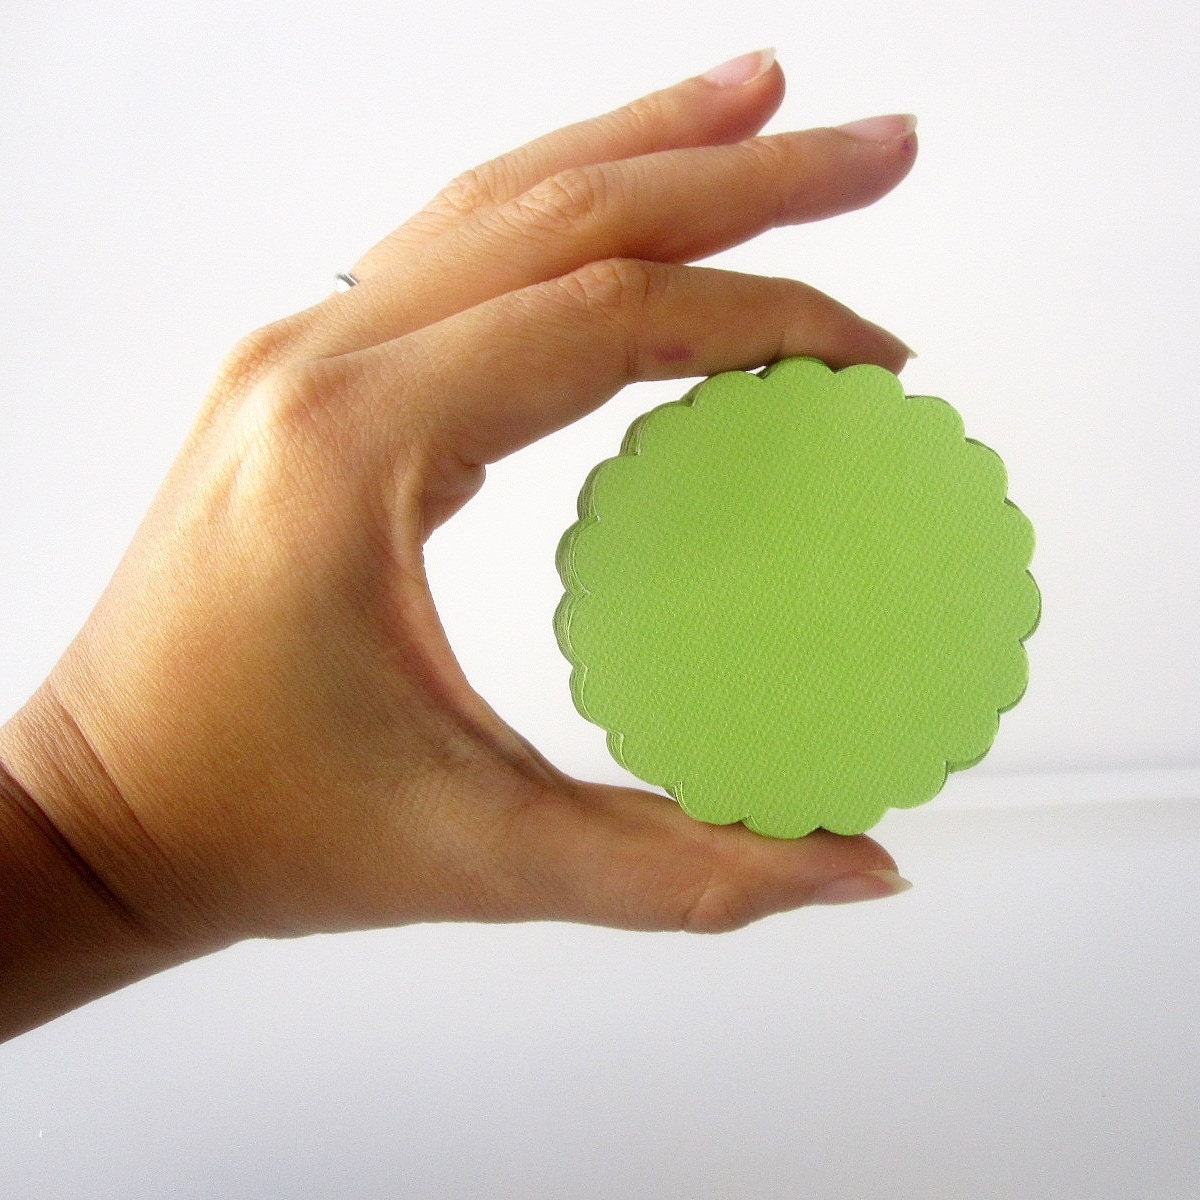 MOVING SALE 50 scalloped circles (2 inches) in Lime Green Paper Textured Cardstock Die Cut